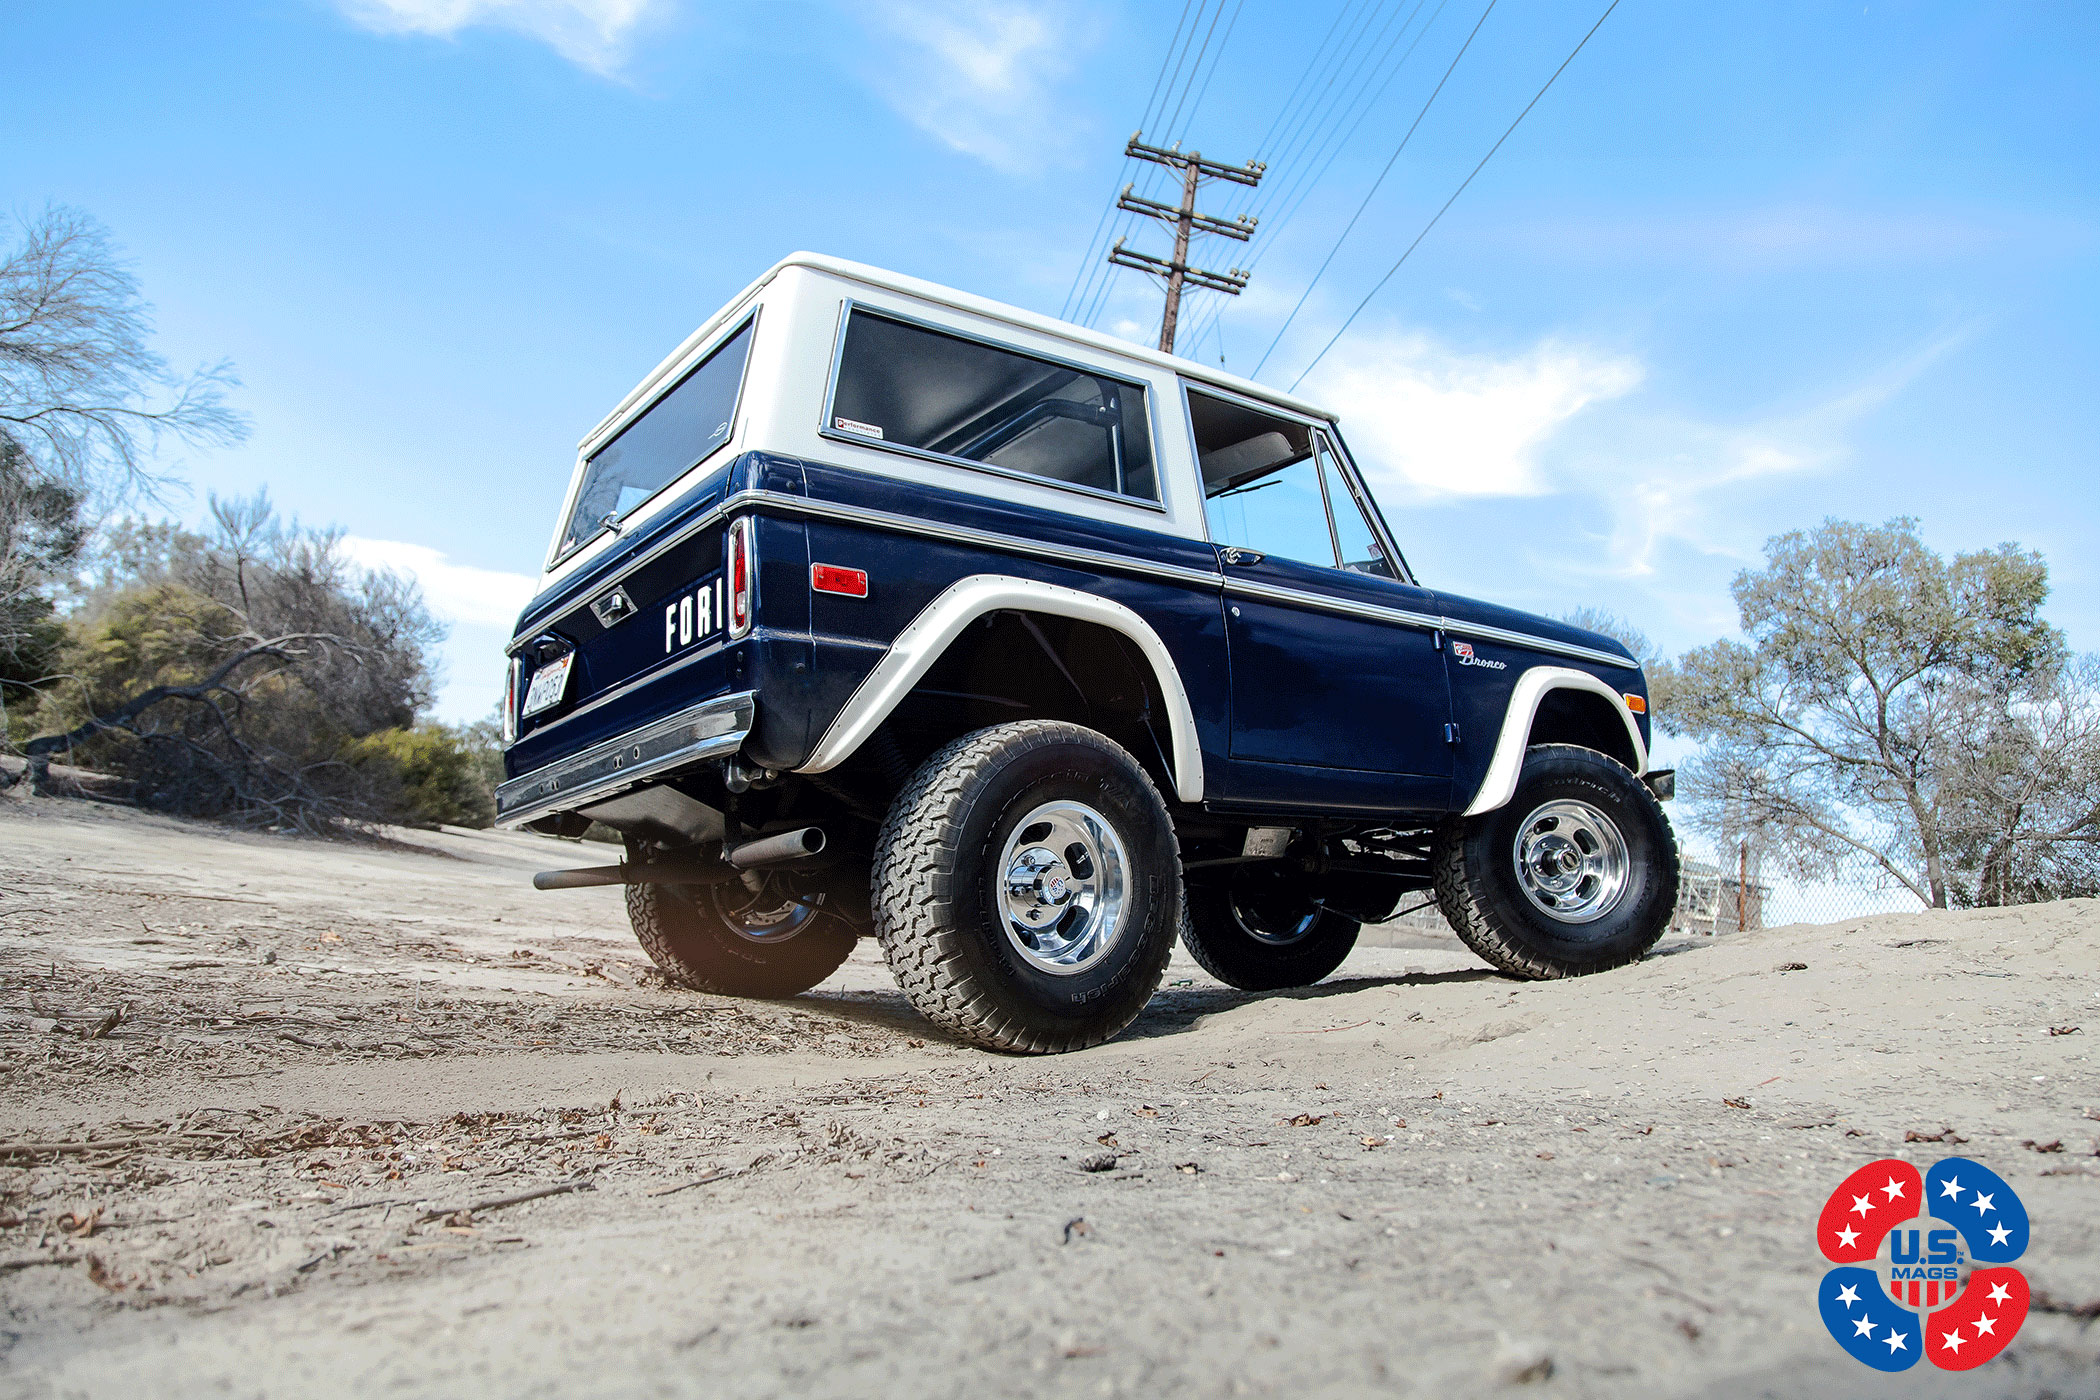 Ford Bronco Indy - U101 Truck Gallery - MHT Wheels Inc.: www.mhtwheels.com/ford-bronco-indy-u101-truck-g-8852.htm